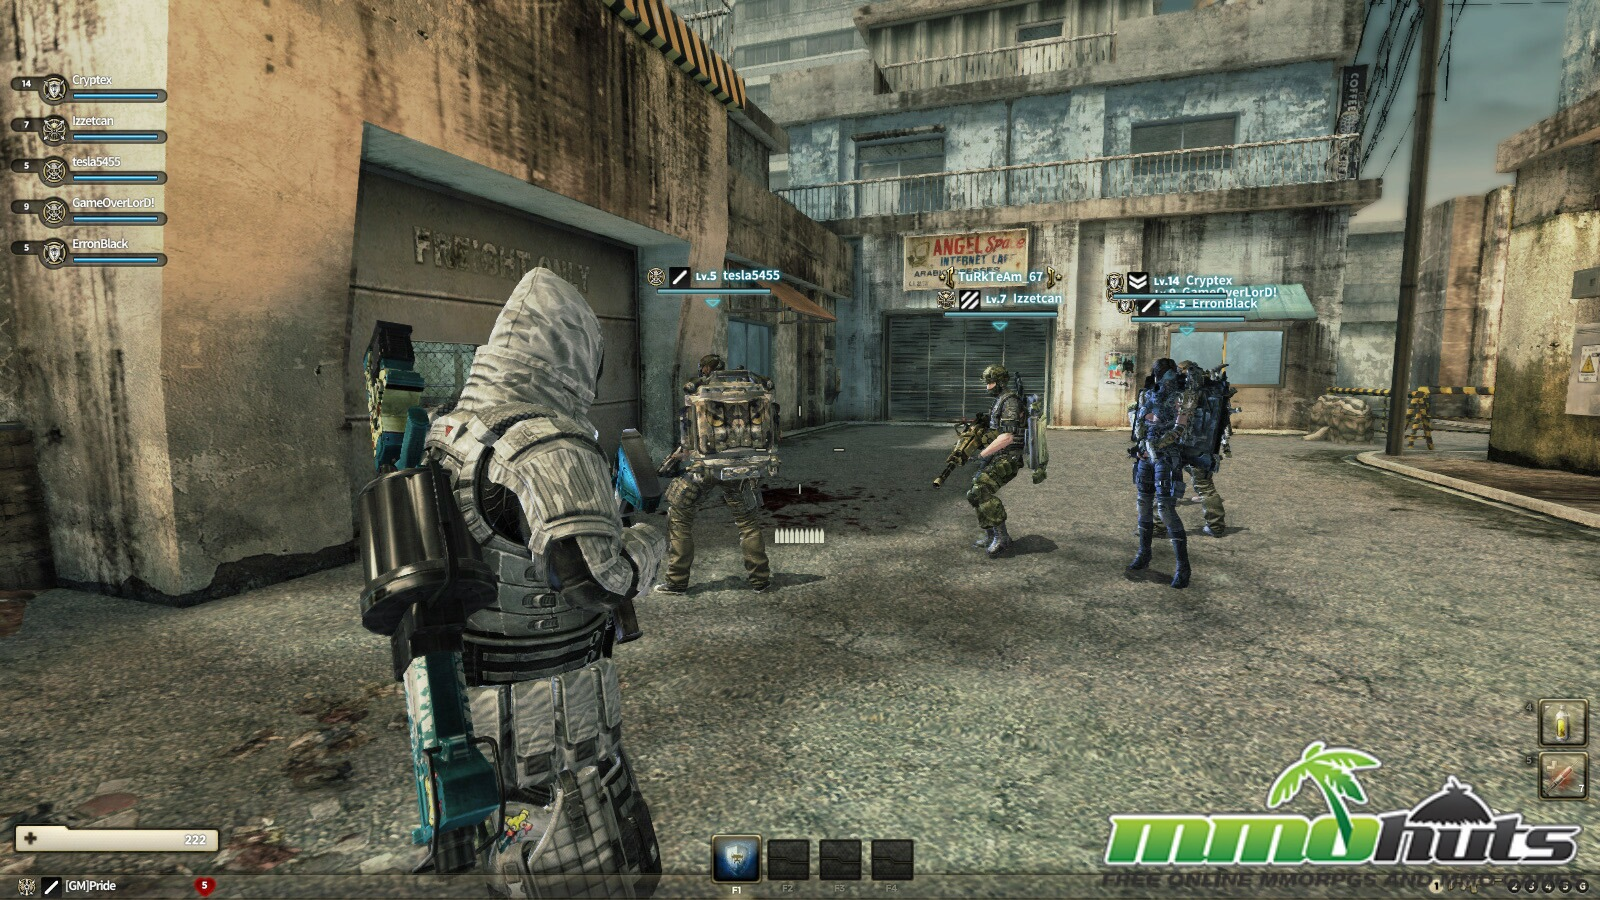 third person shooter video game - HD1600×900